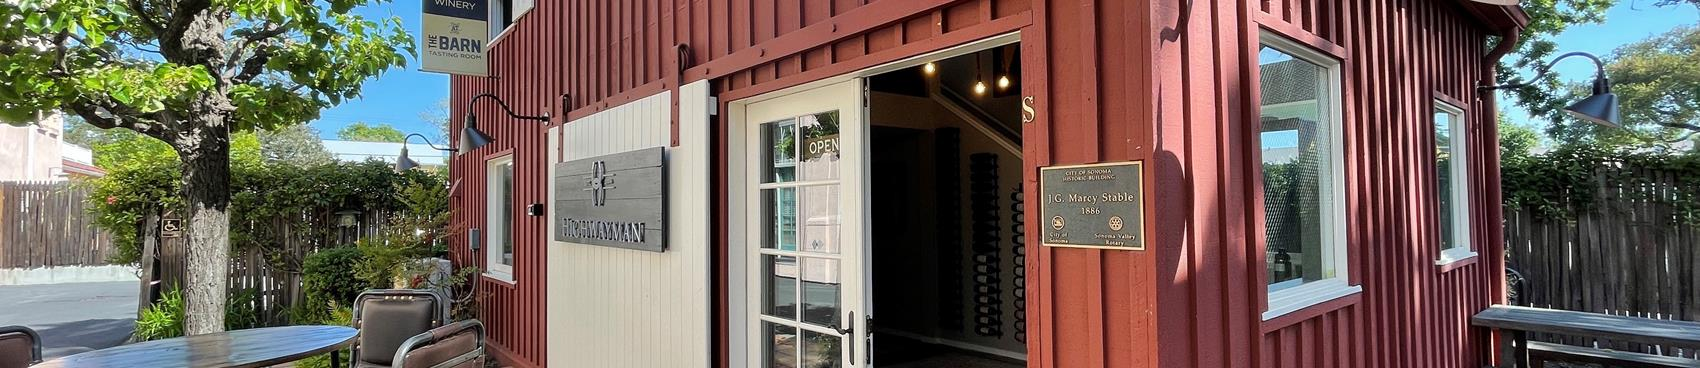 A image of Highway 12 Winery